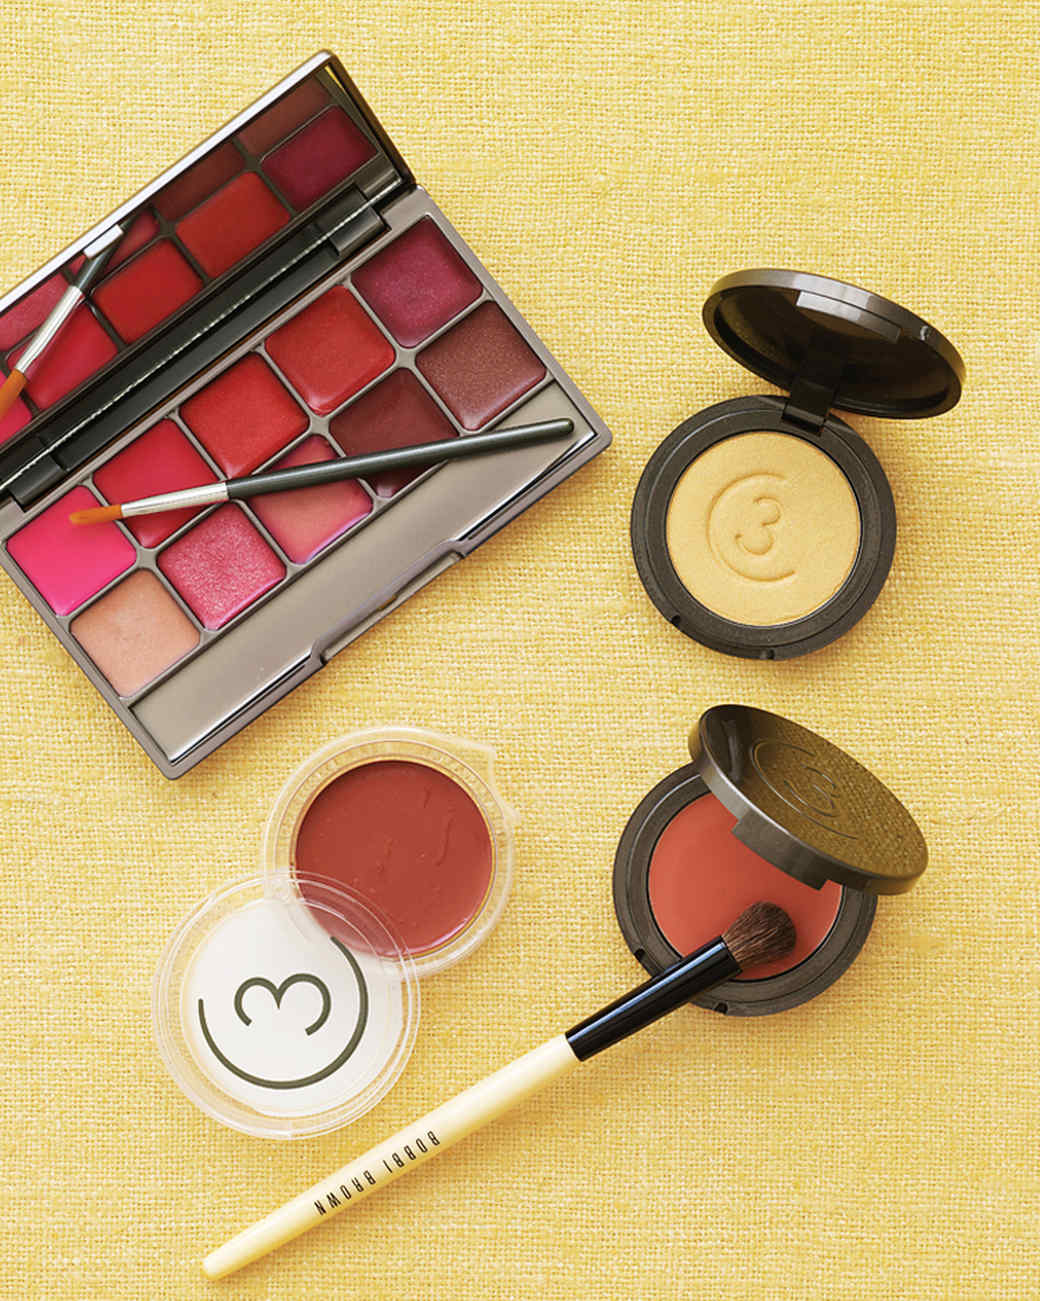 mwd104251_win09_makeup.jpg